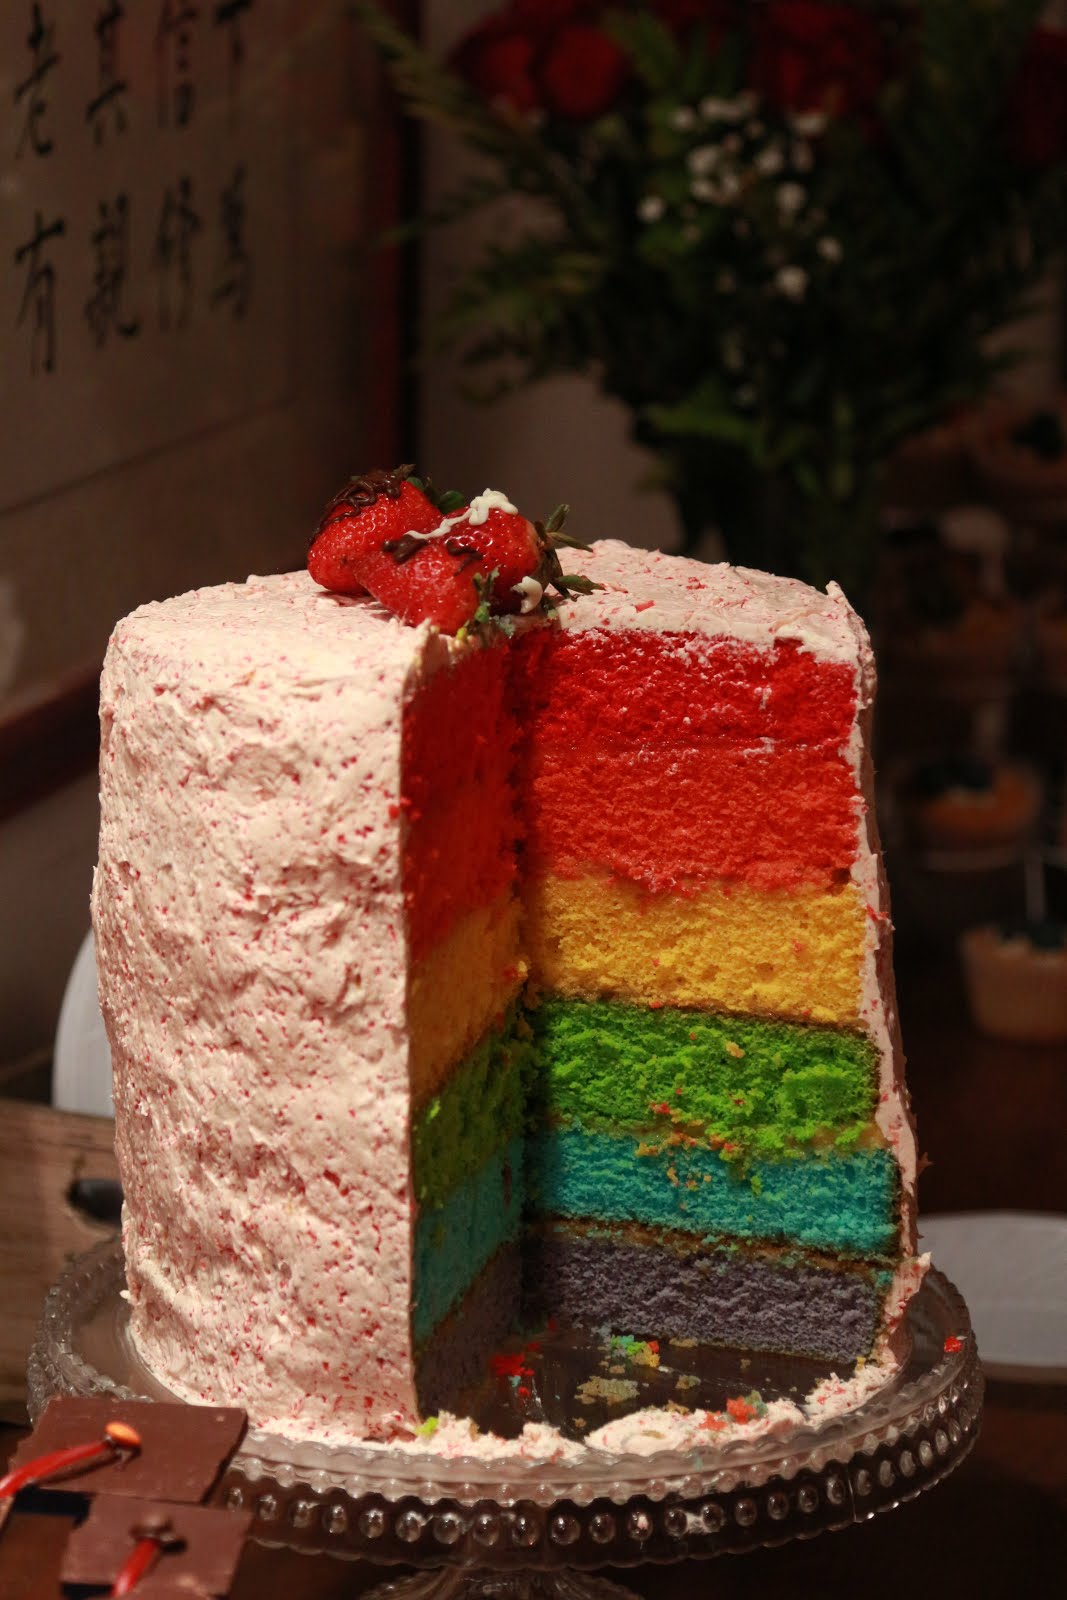 ~My Fun Rainbow Cake!~